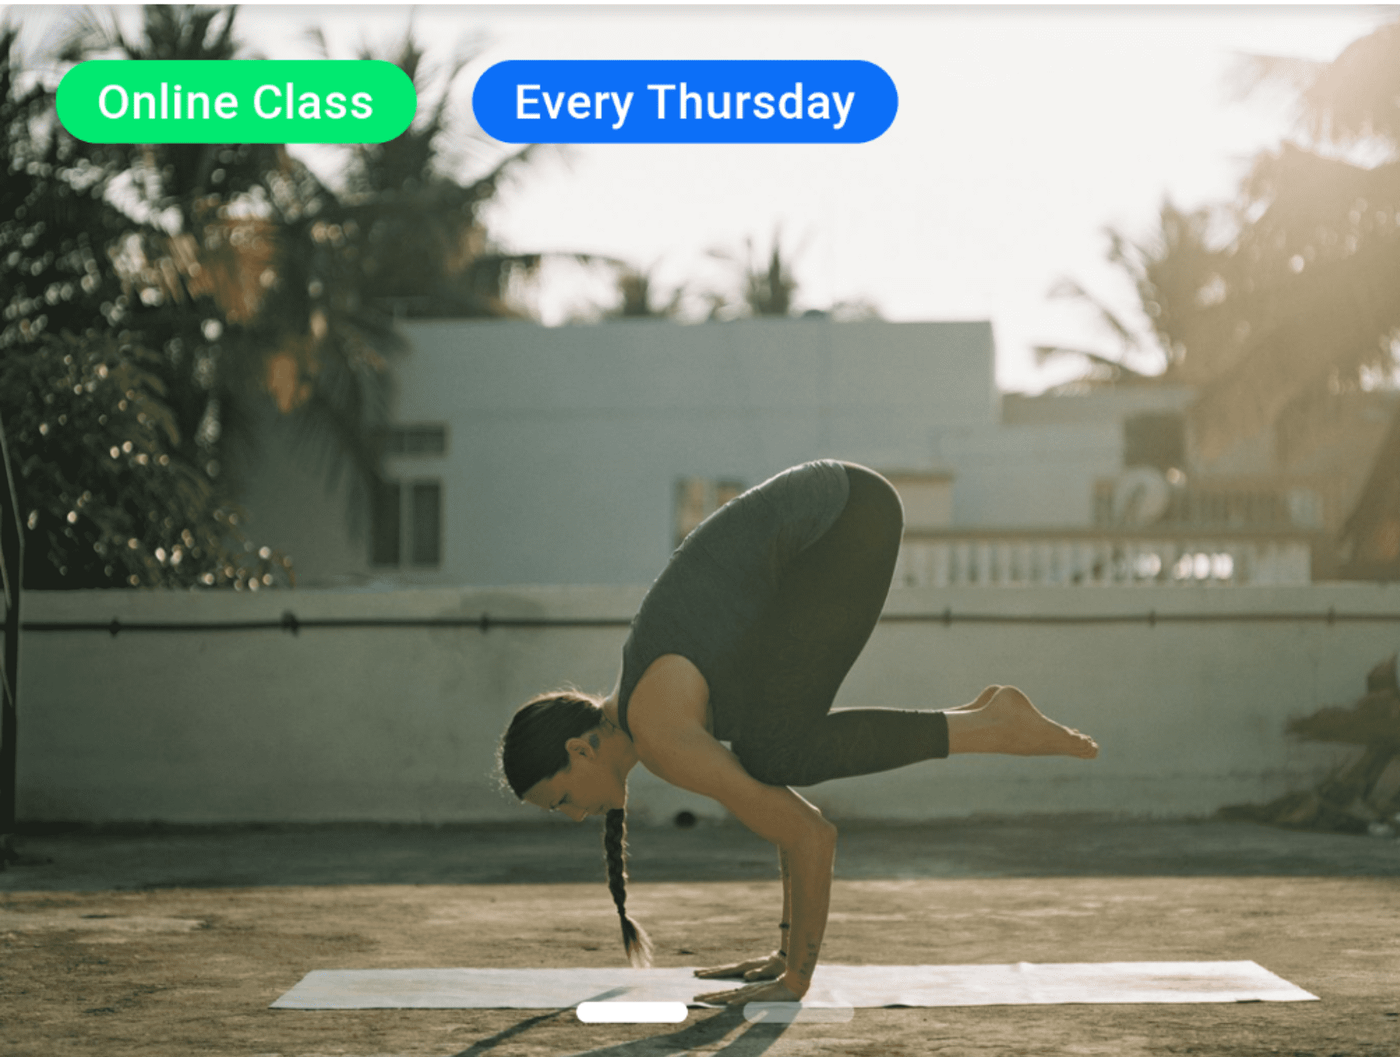 Lunchtimes on Thursday our runners rehab yoga 🧘♀️🙏❤️  https://bua.fit/class/kRWg4mt8LJ2m